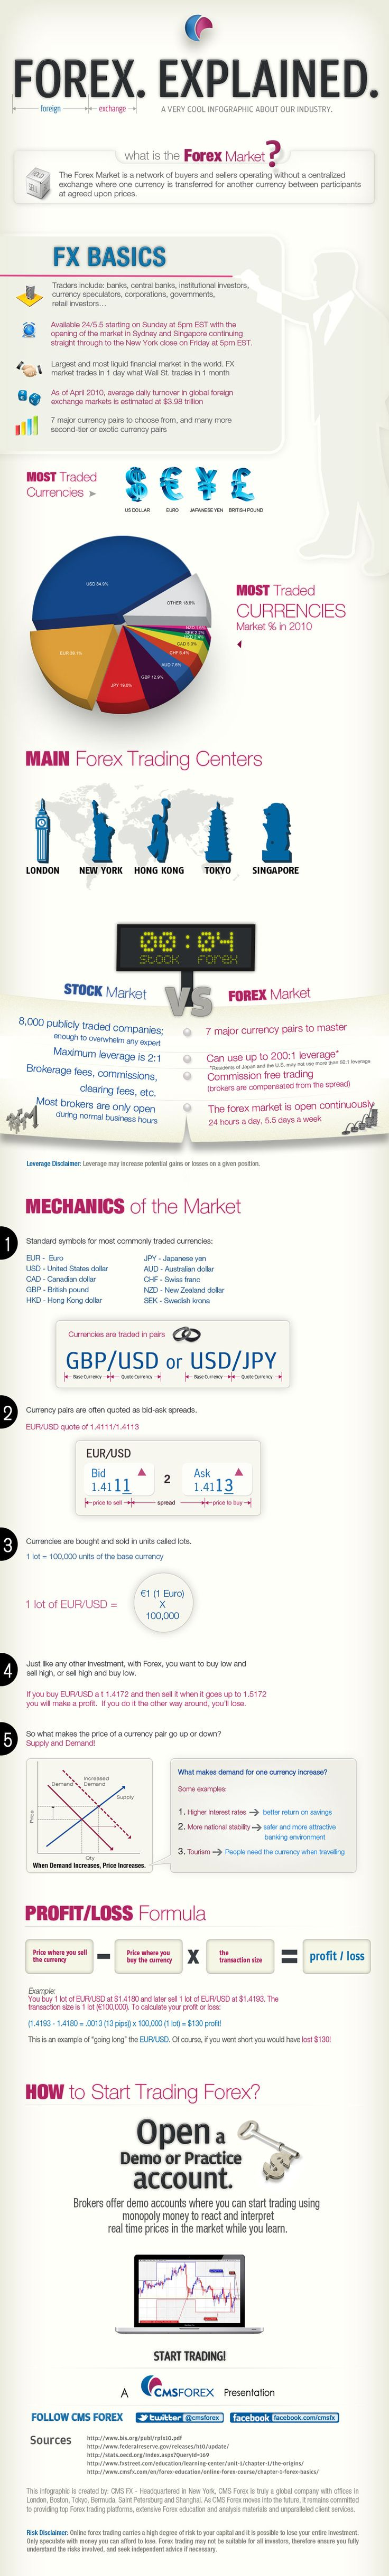 Forex Explained Infographic